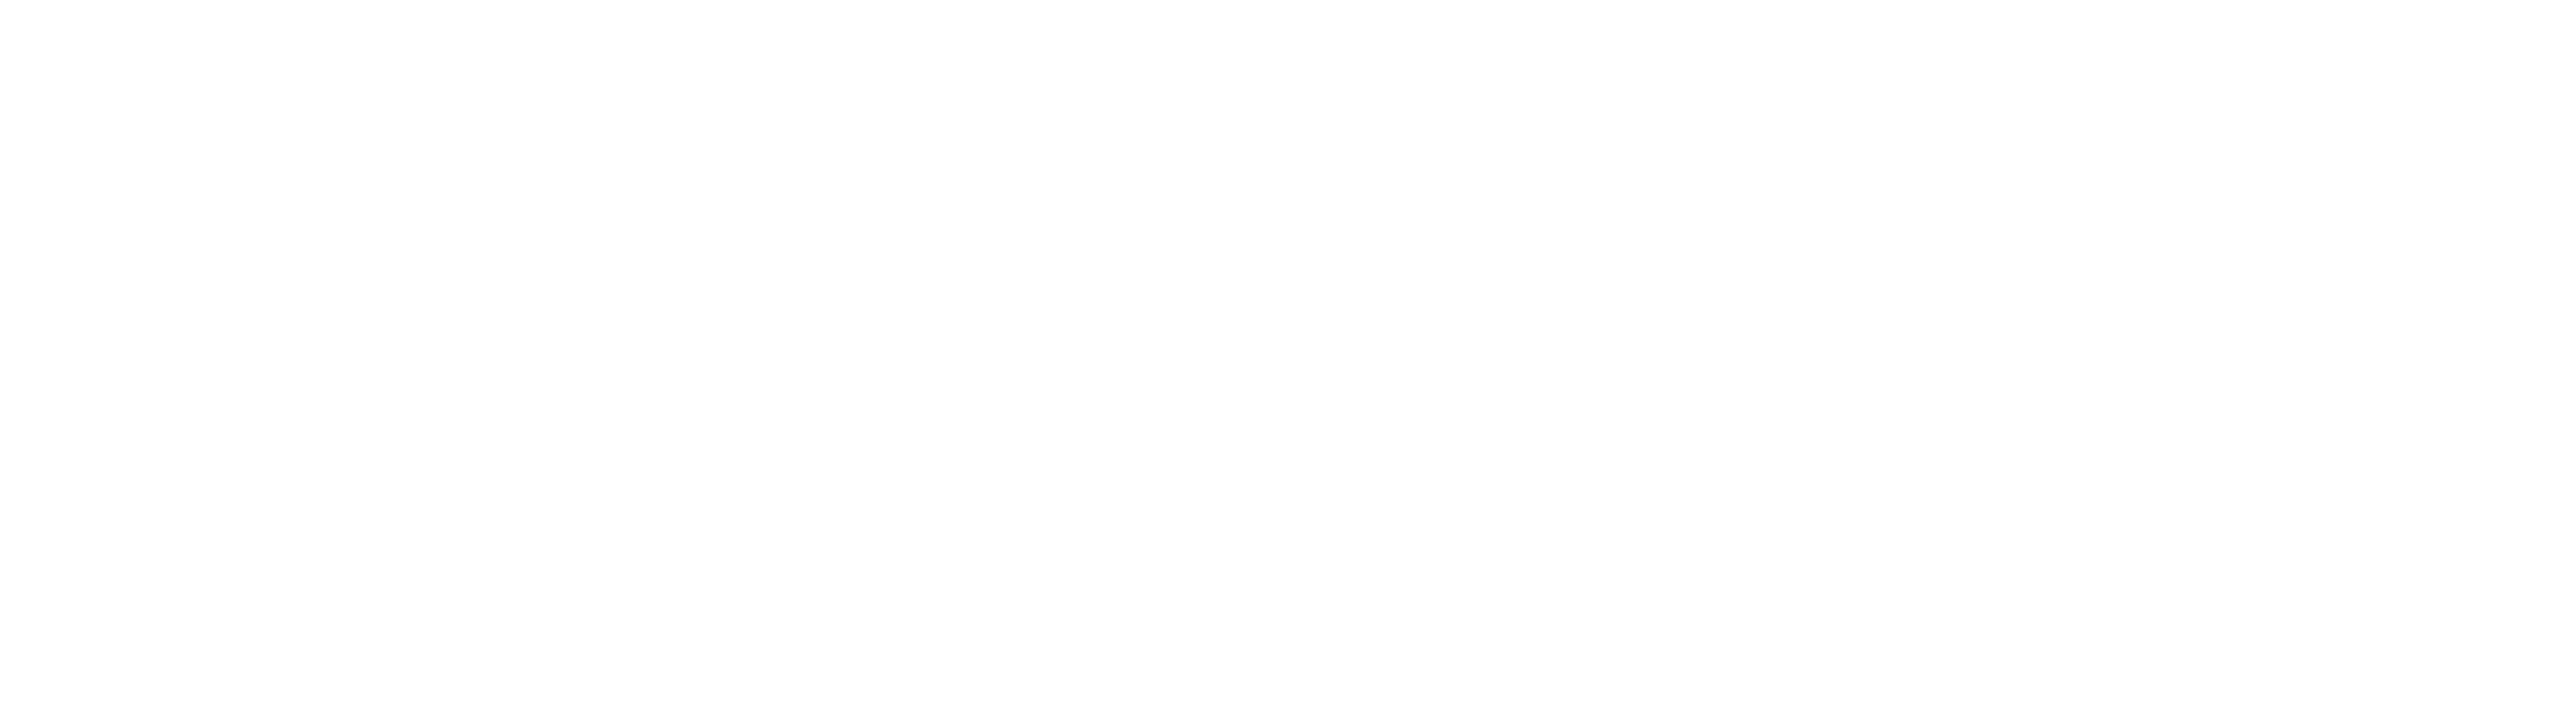 Nocatee White PNG logo Live the Lifestyle